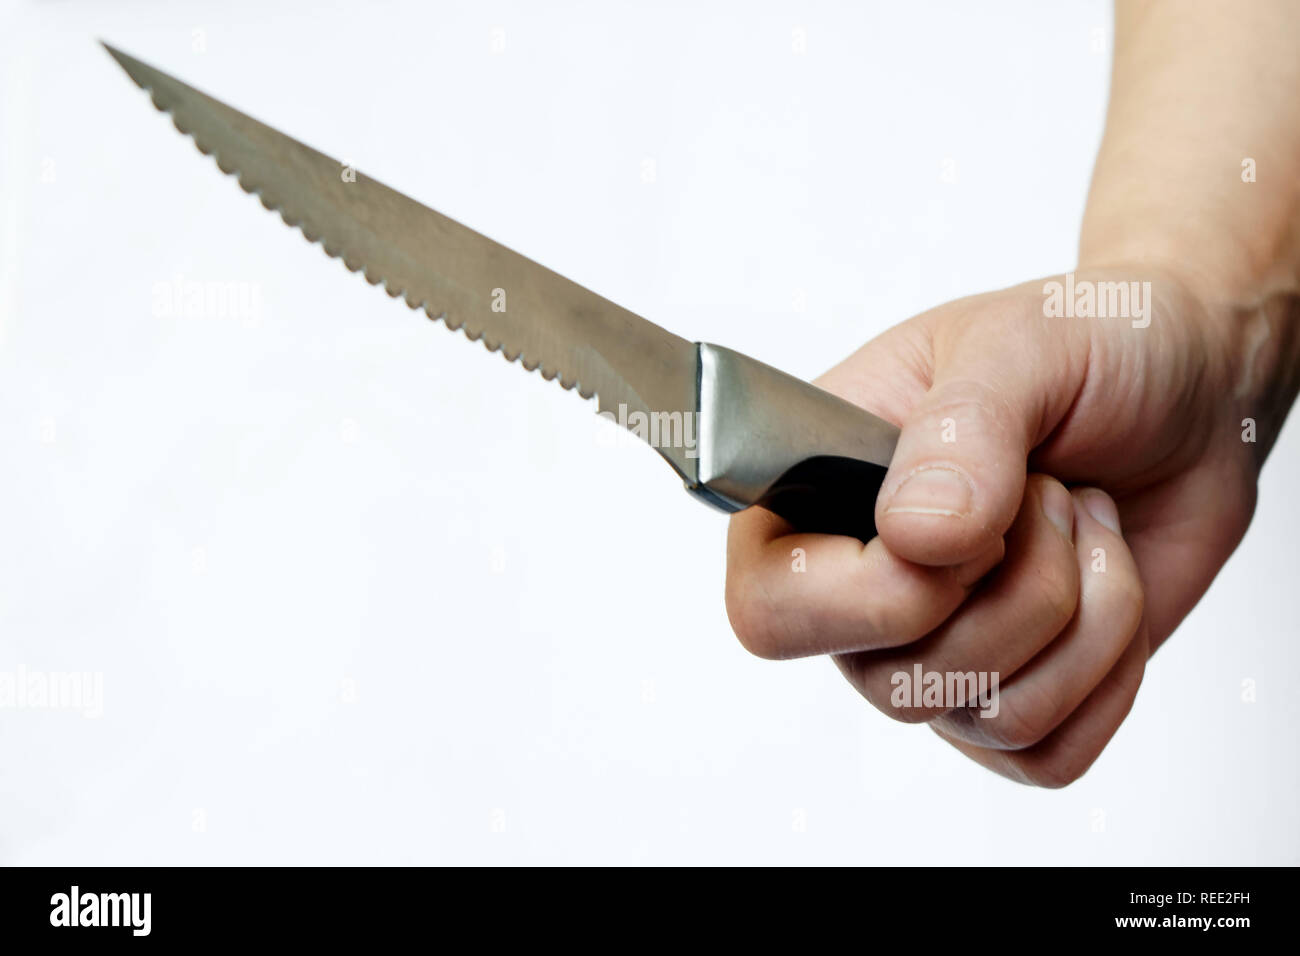 Knife In Teeth Stock Photos & Knife In Teeth Stock Images - Alamy